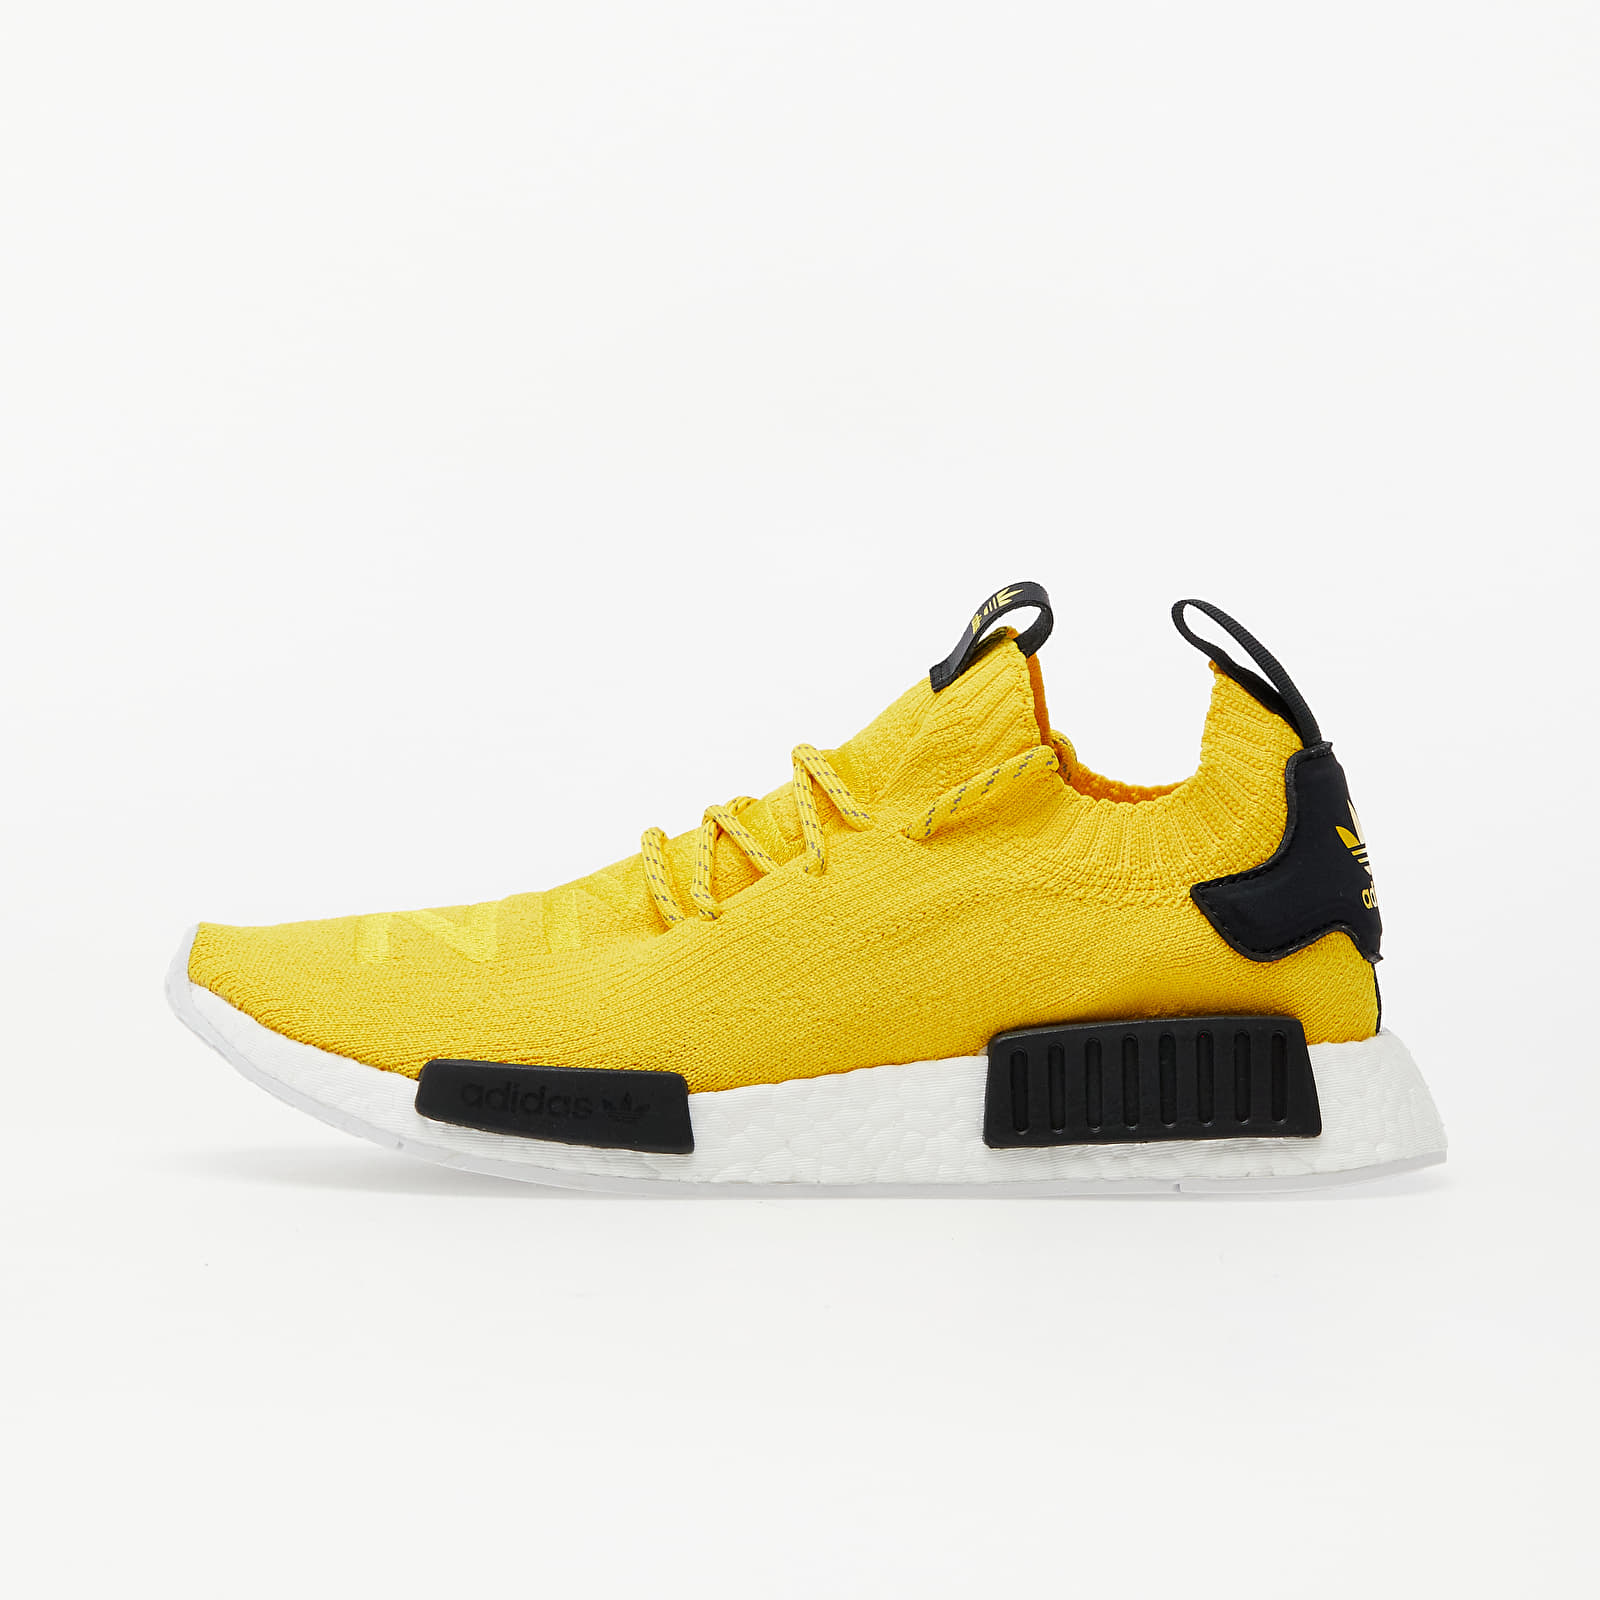 Men's shoes adidas NMD_R1 Primeknit Eqt Yellow/ Eqt Yellow/ Core Black